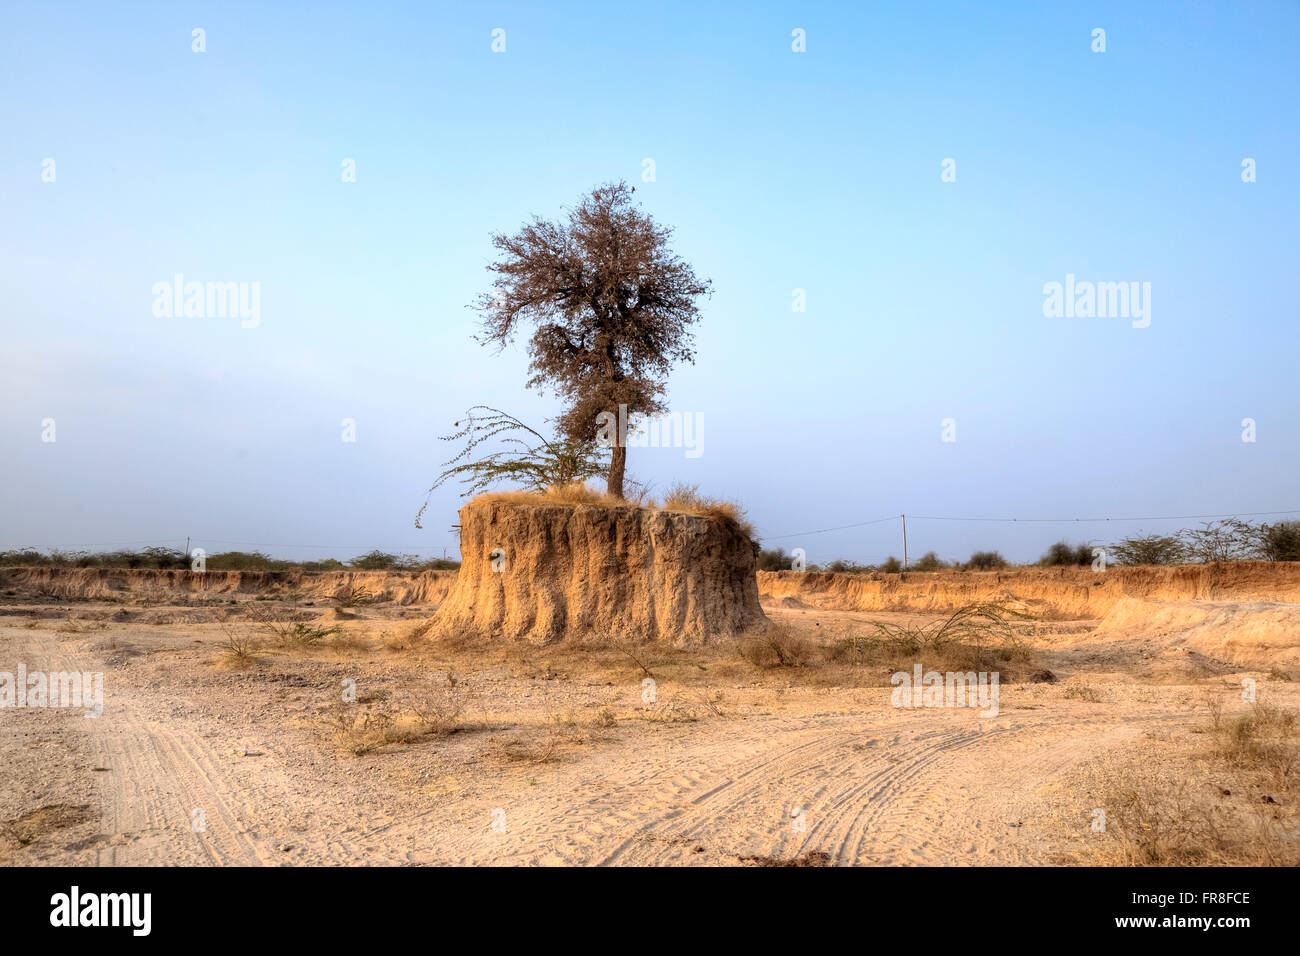 saving holy trees in a sand quarry near Jodhpur, Rajasthan, India, Asia - Stock Image